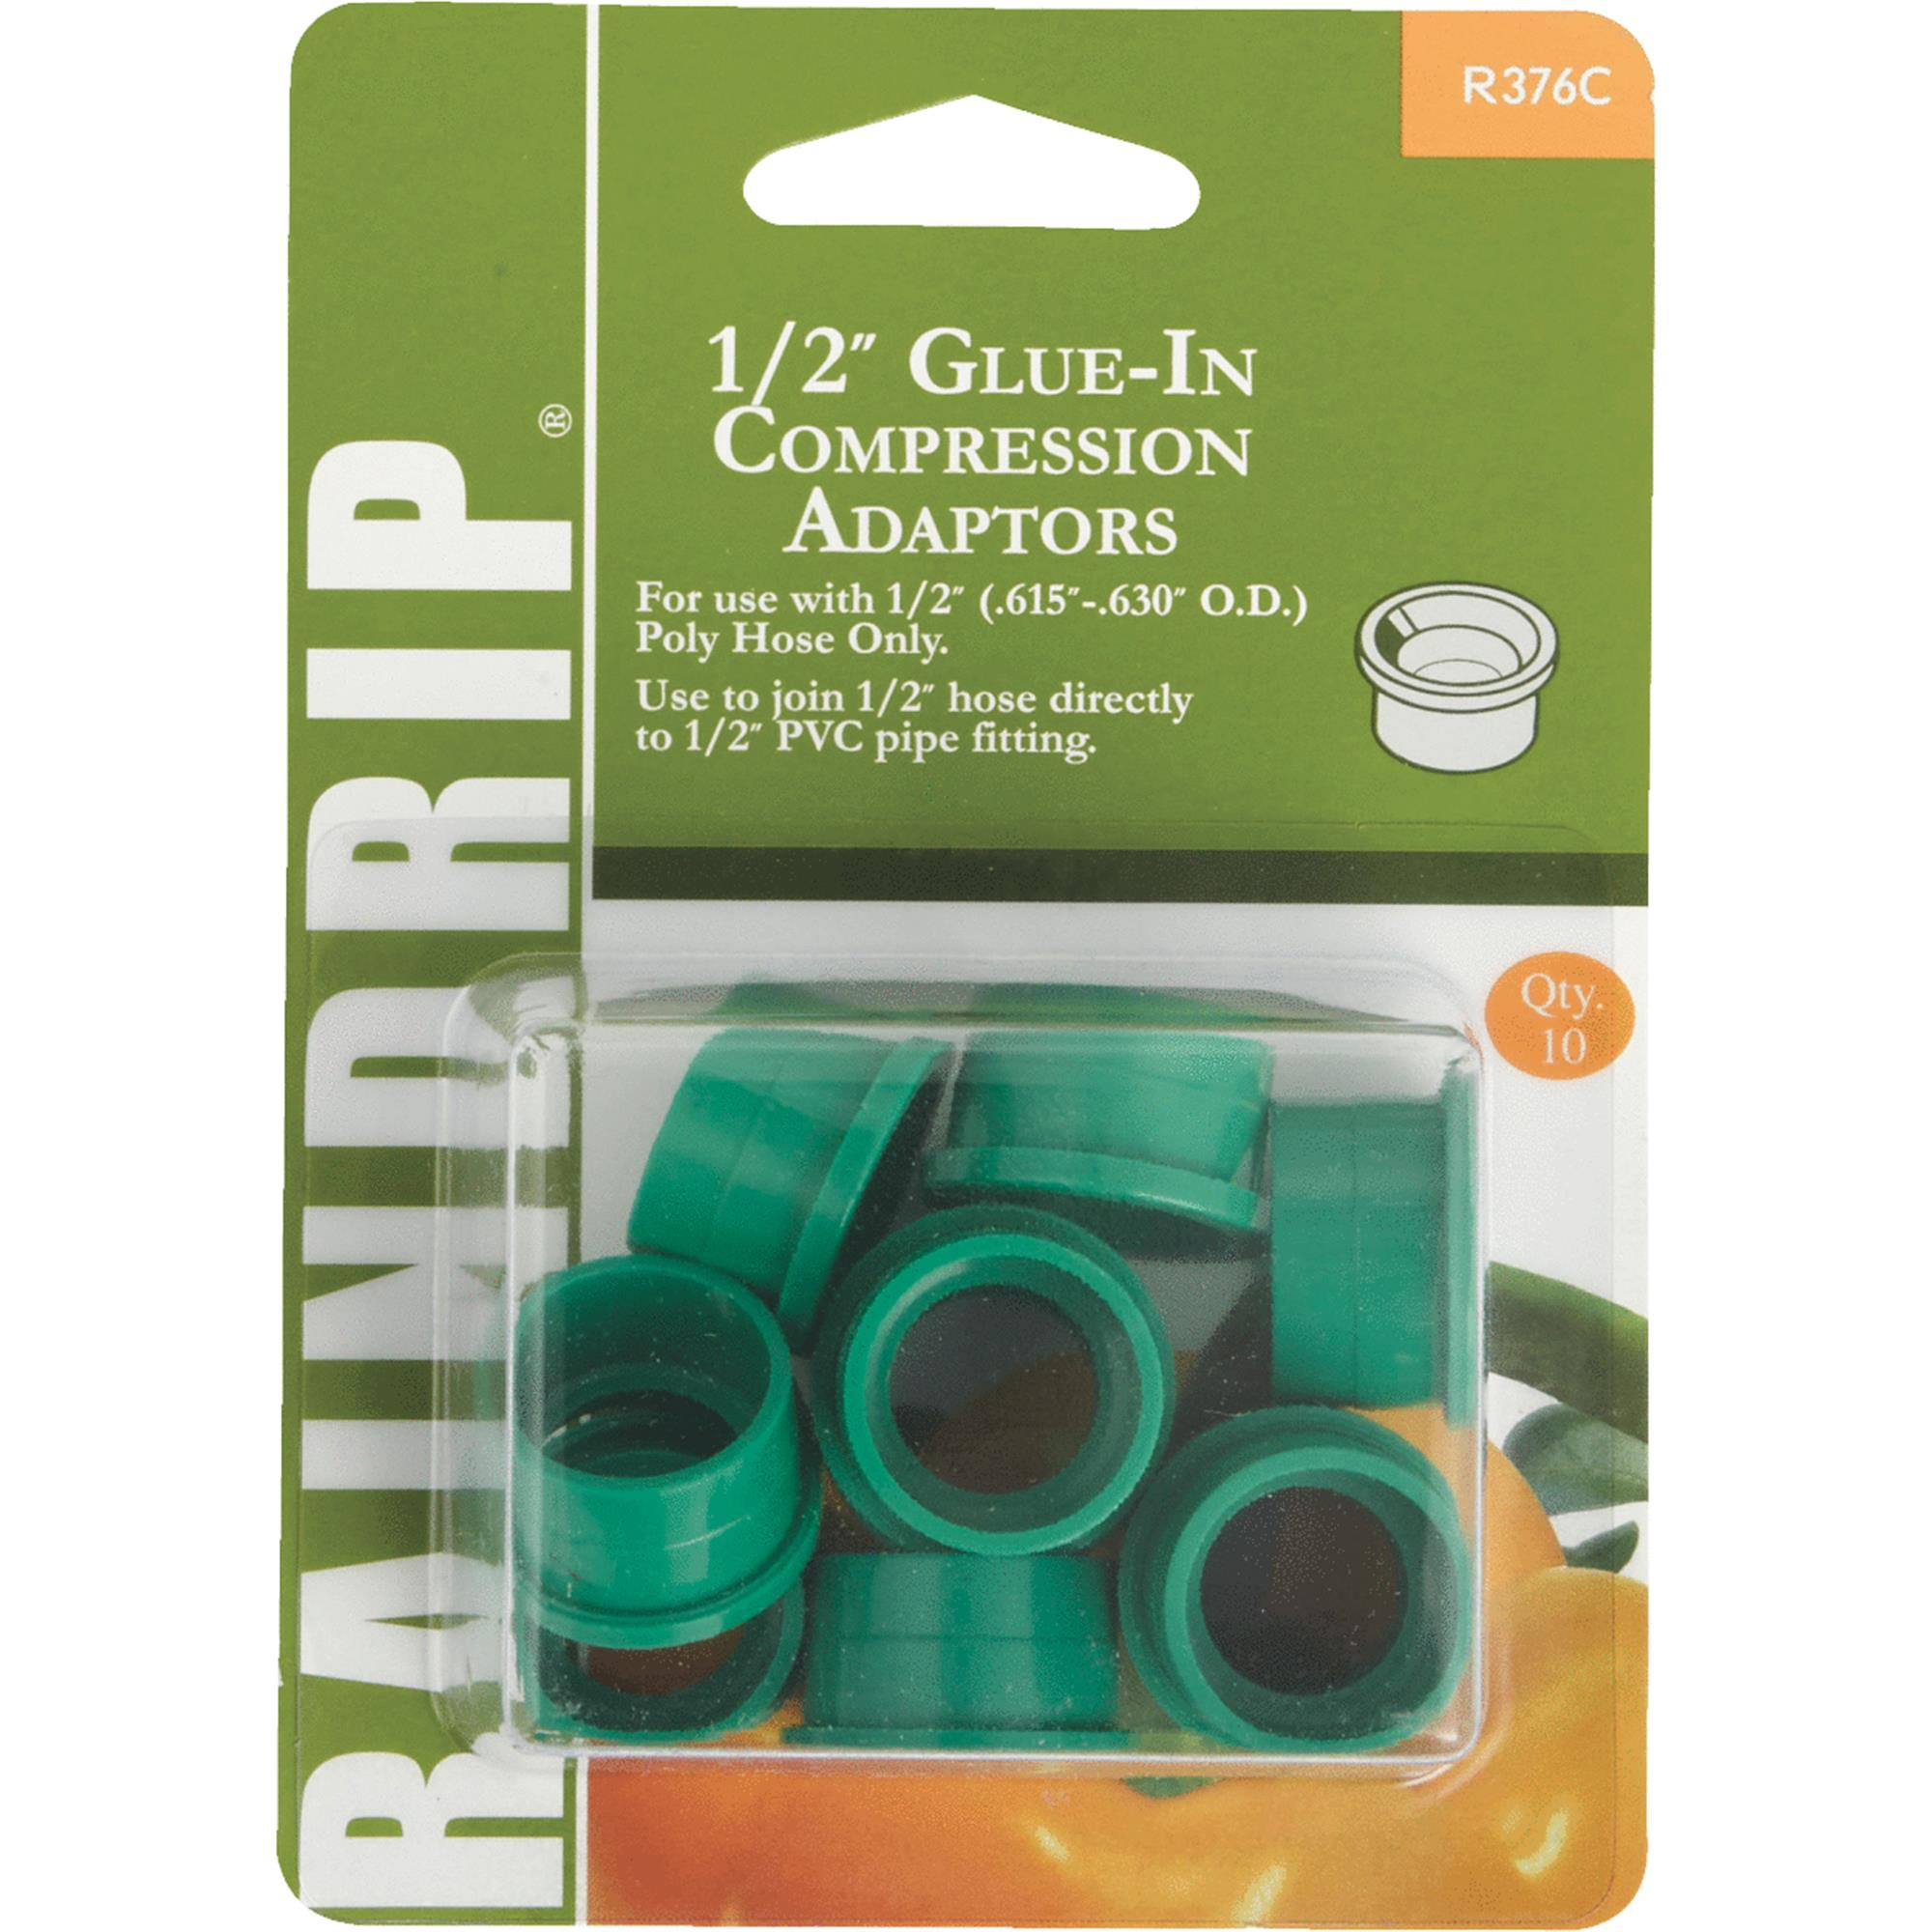 Raindrip Glue-In Hose-To-Drip Adapter